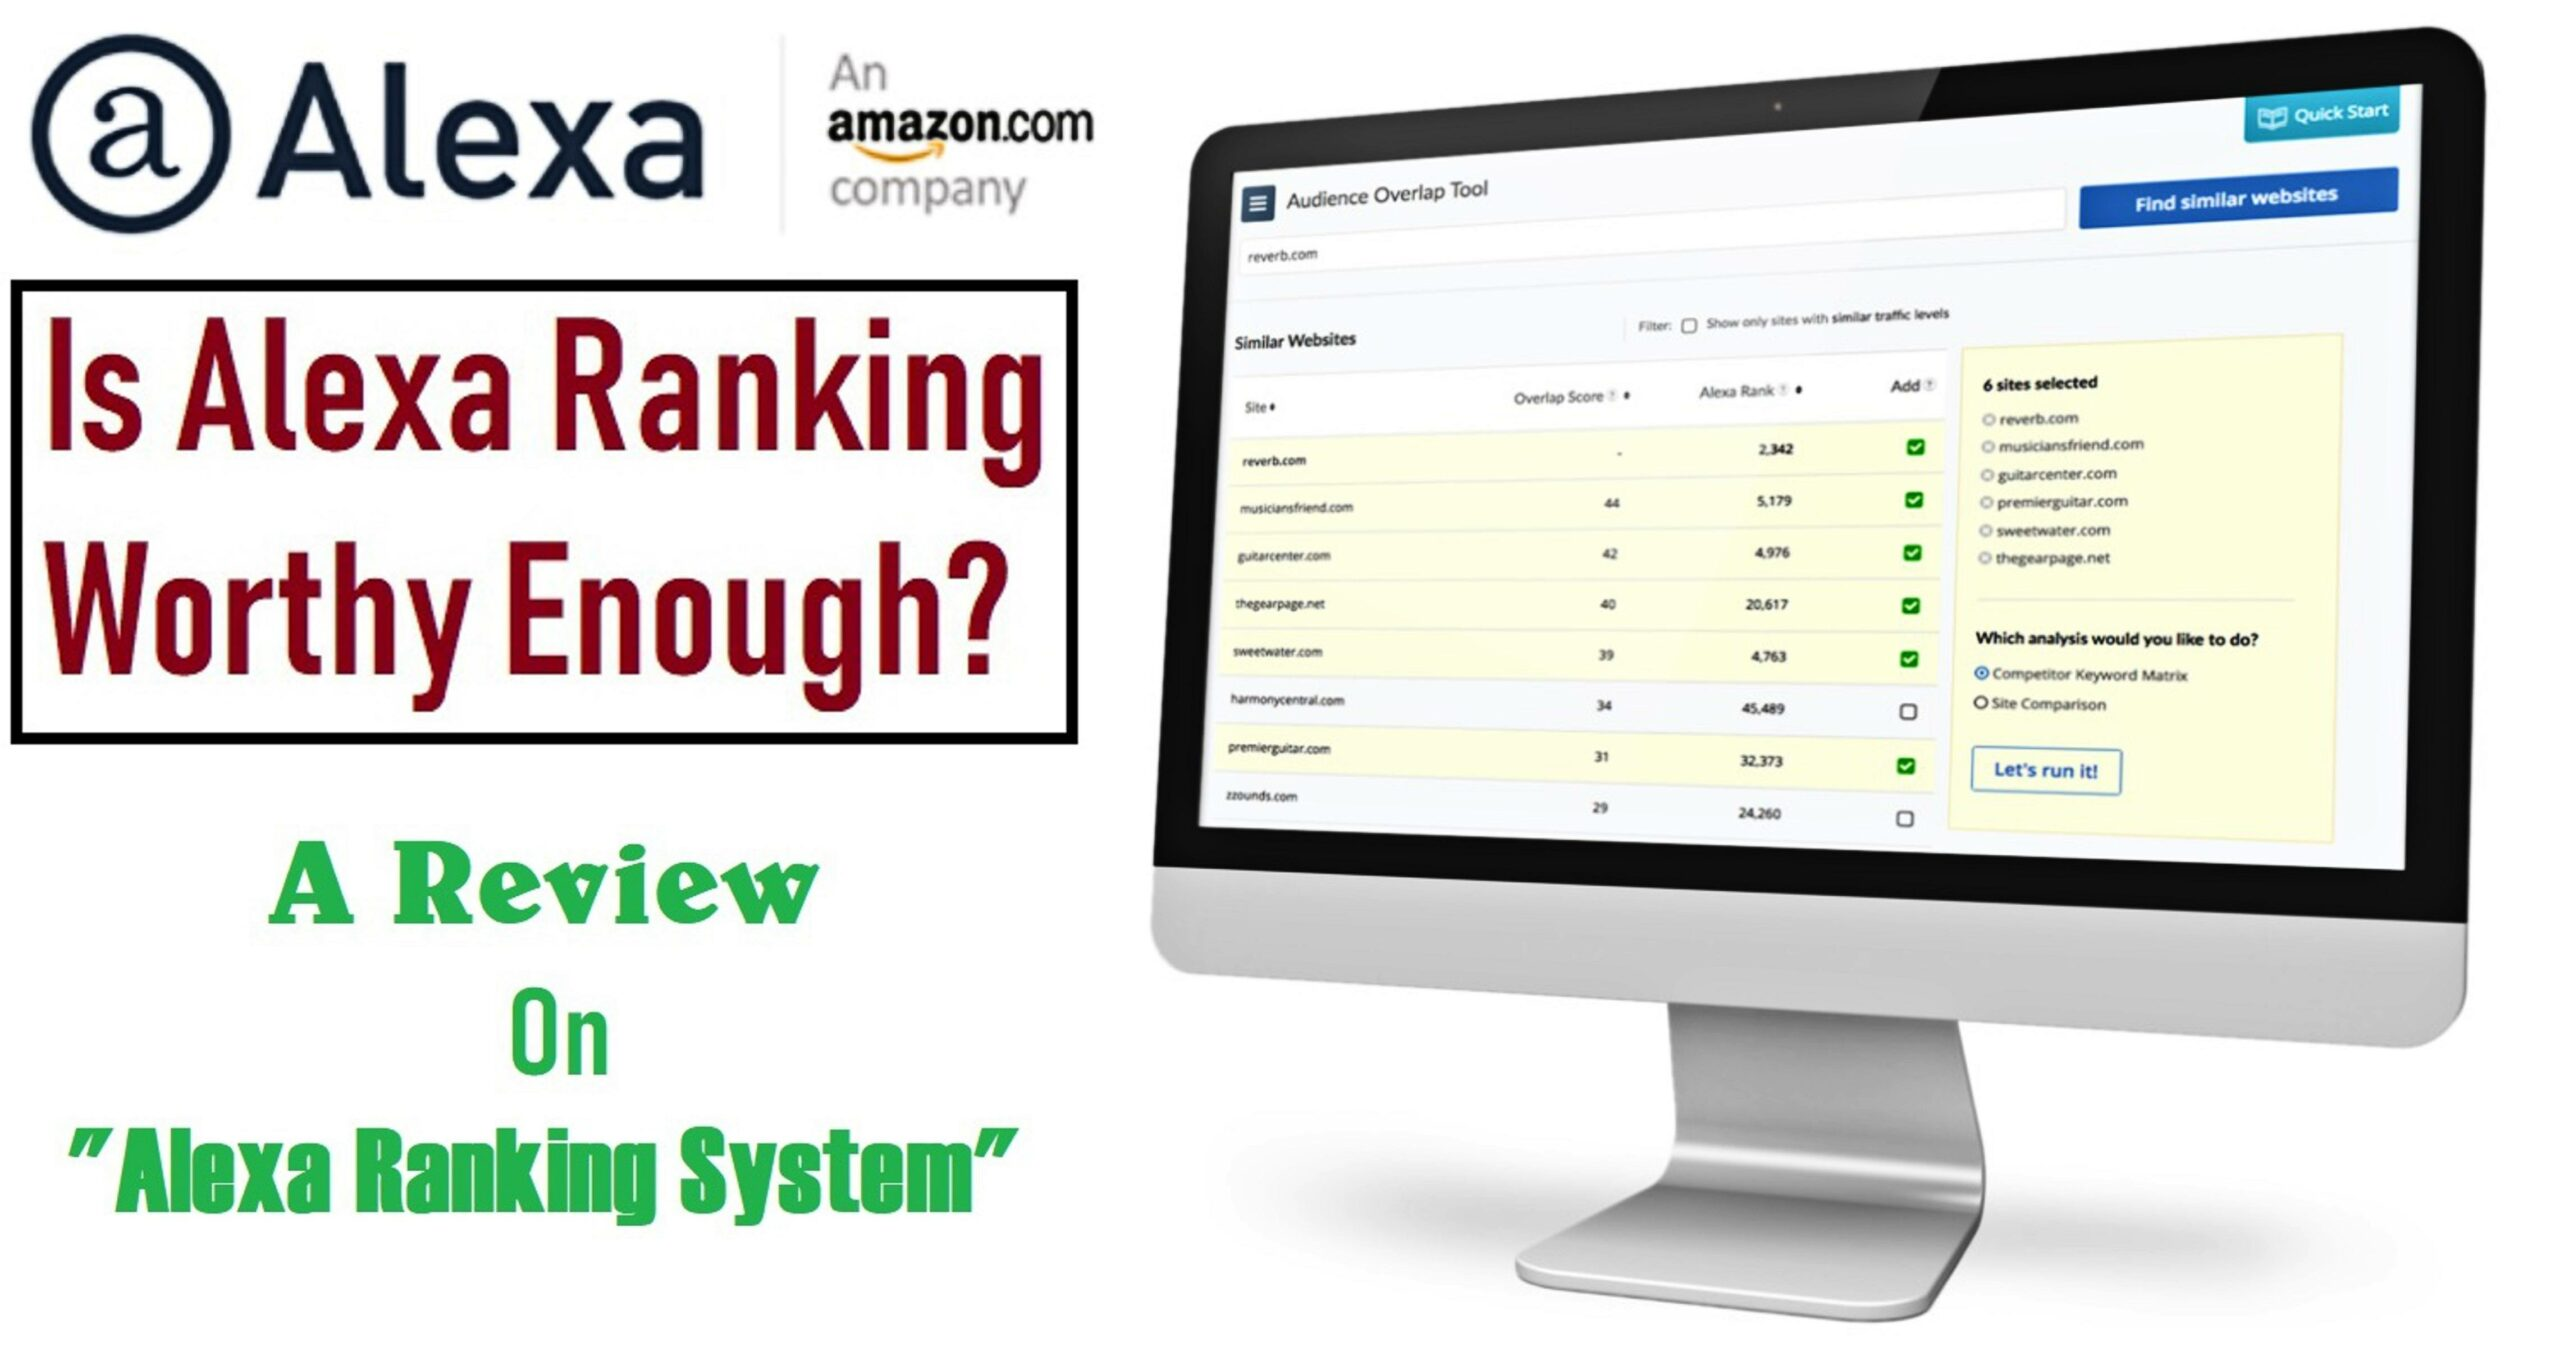 Alexa Site Traffic – Is Alexa Ranking System Useful for A Profitable Online Business?